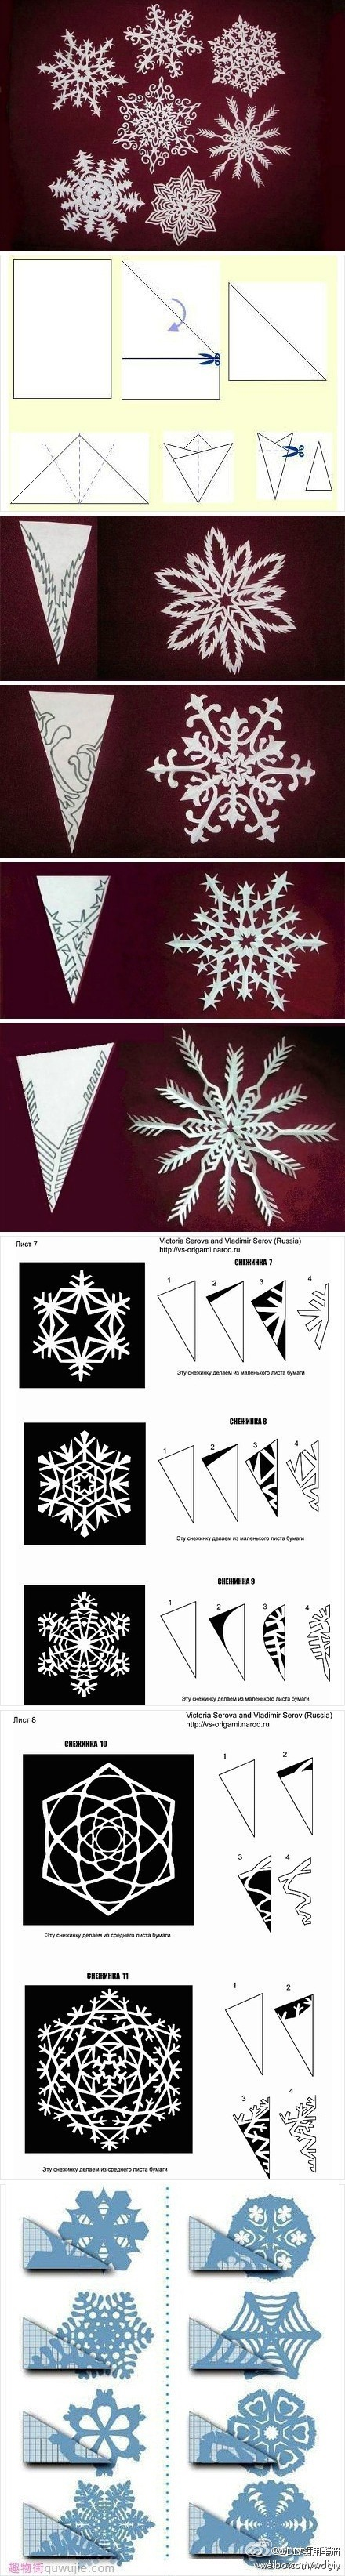 Snowflake Patterns - I wish I had the patience for these, they're gorgeous!